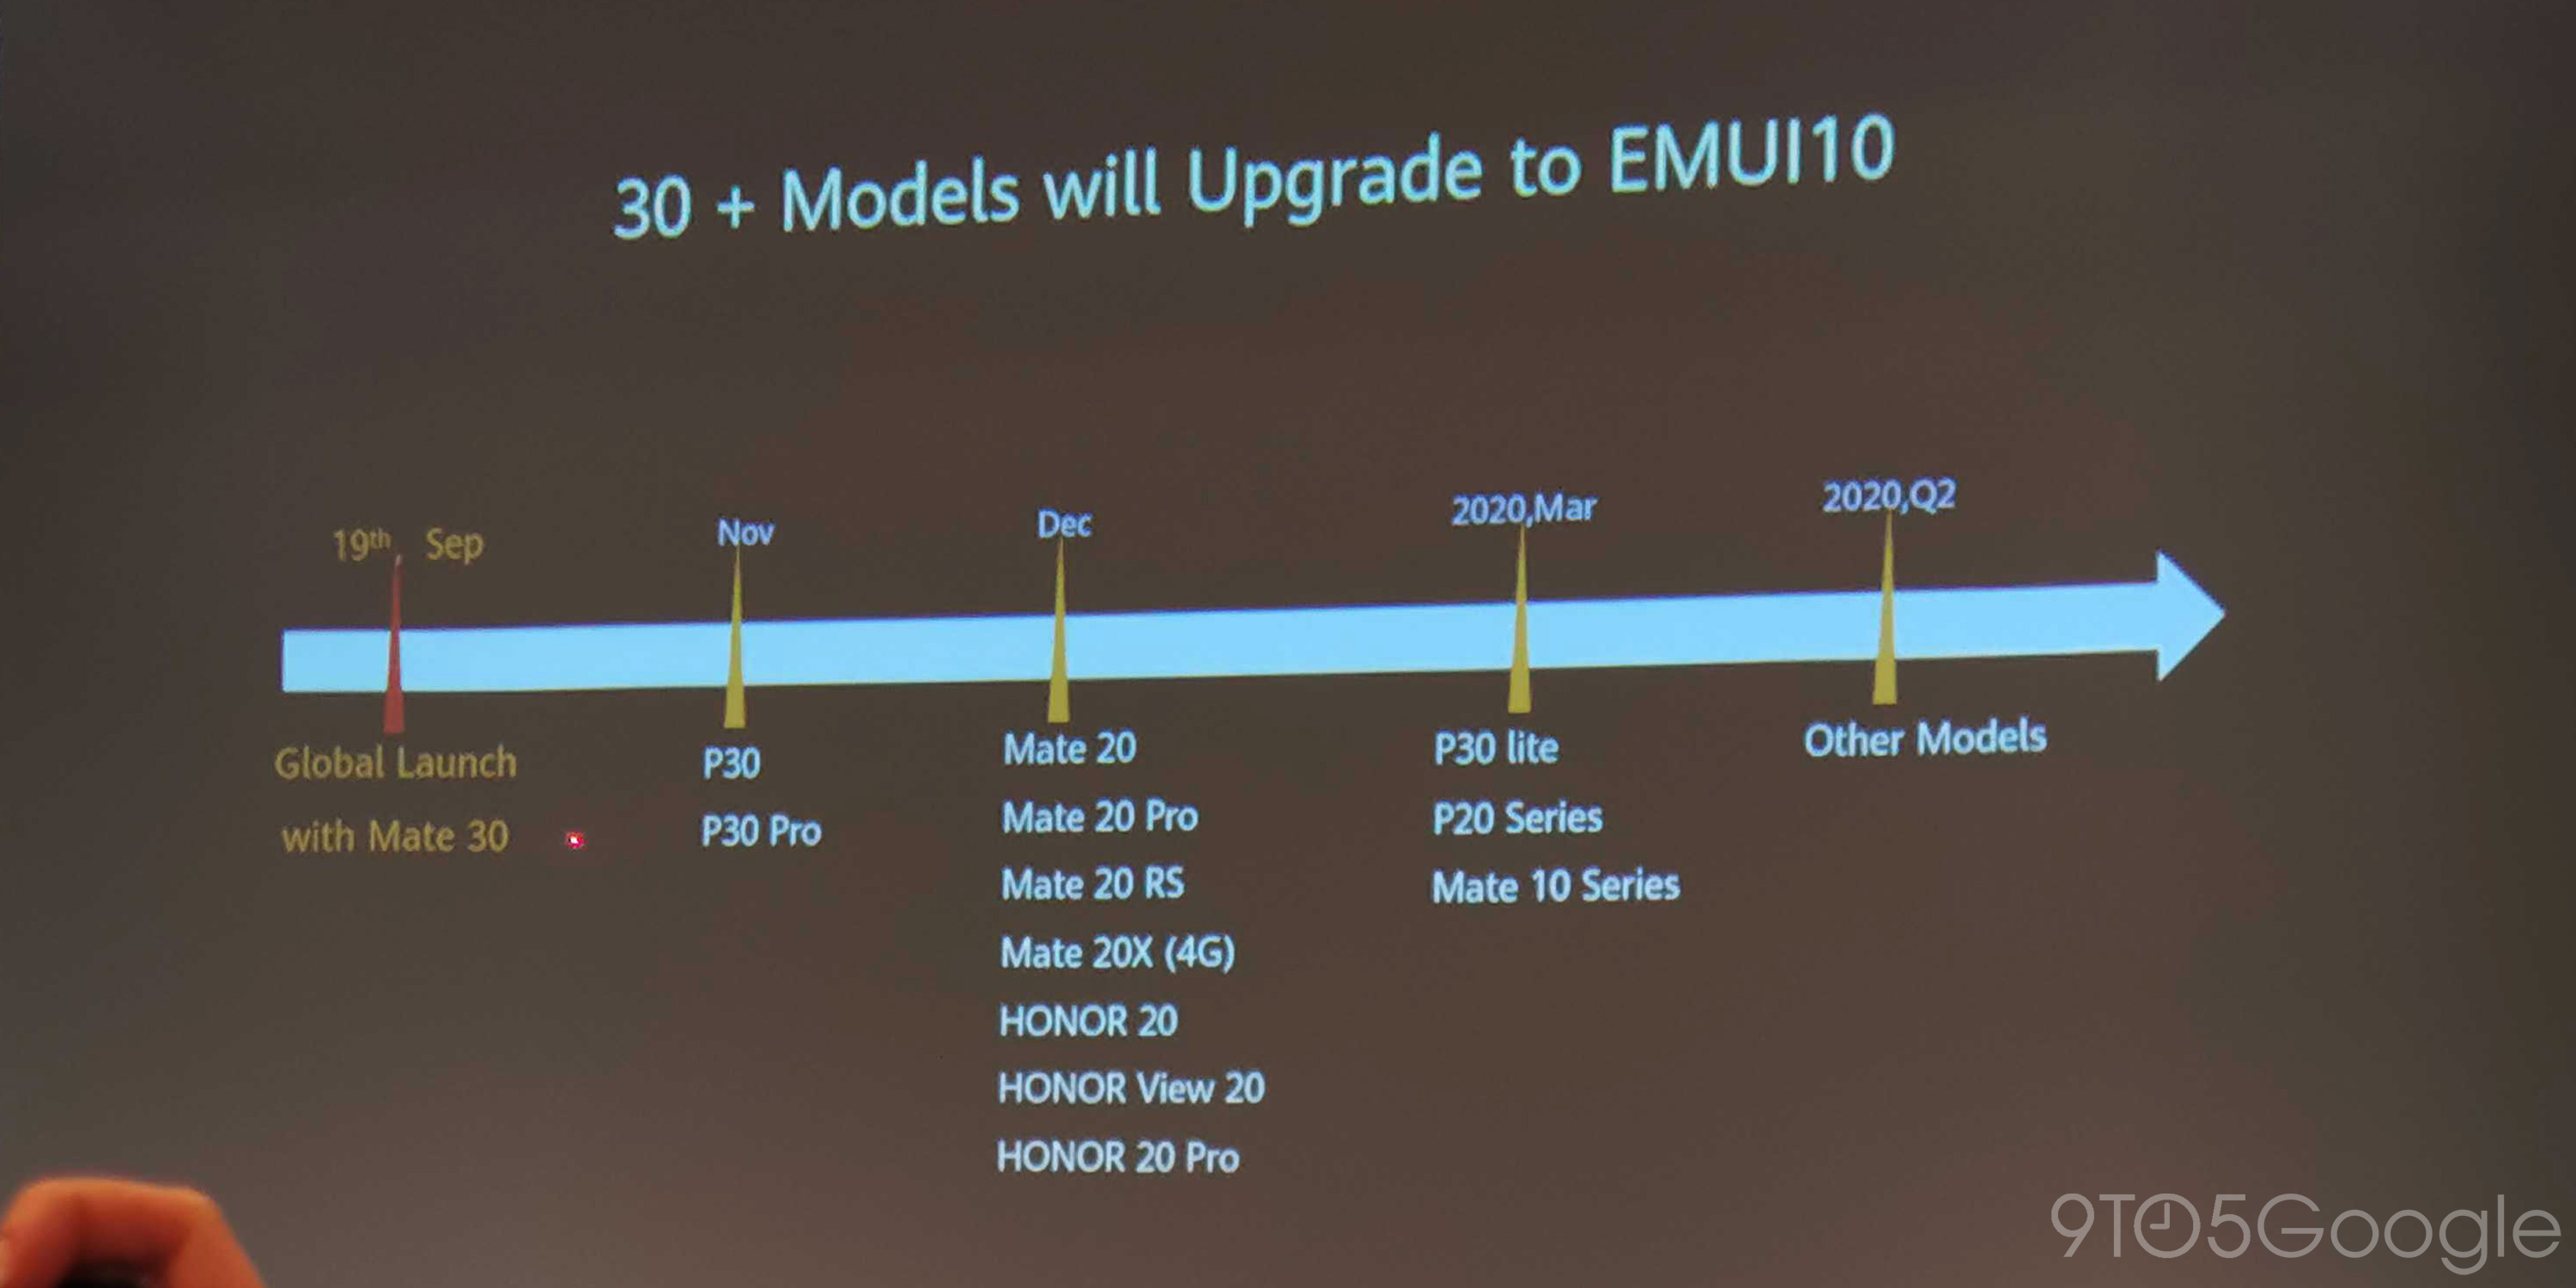 Emui 10 Road Map Confirms Update Heading To 30 Models 9to5google